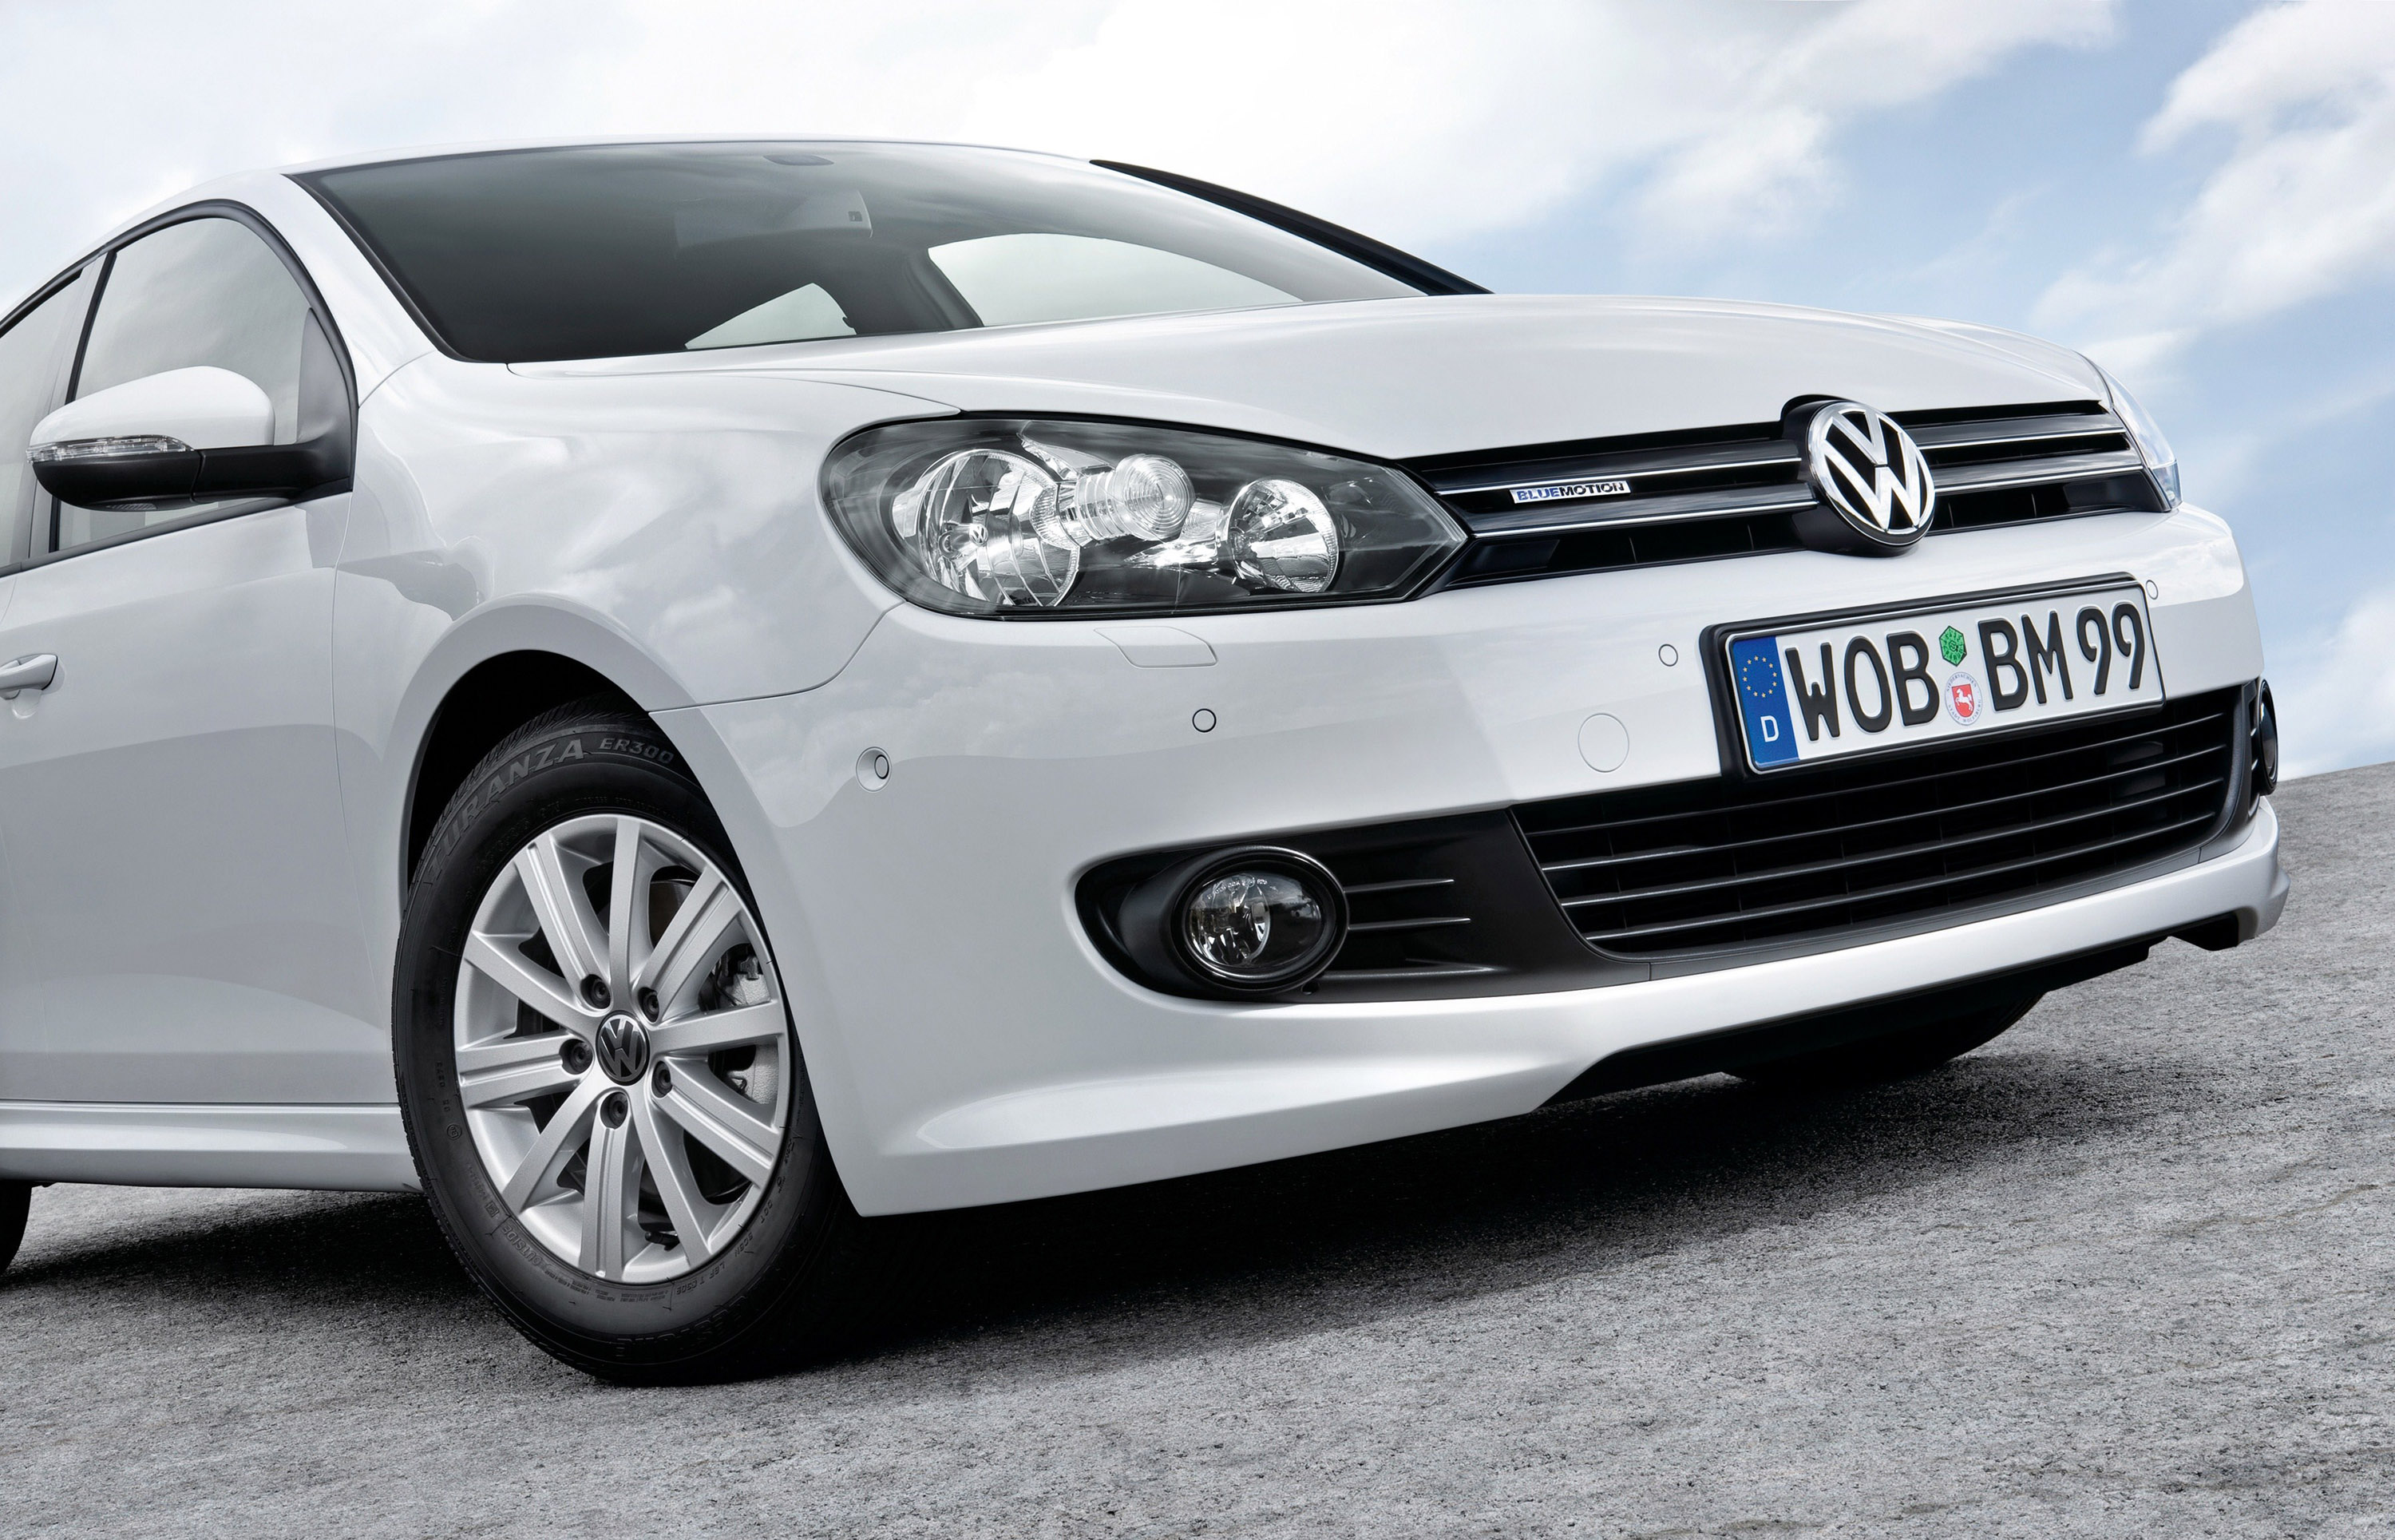 Volkswagen Golf VI Bluemotion awarded Green Car of the Year